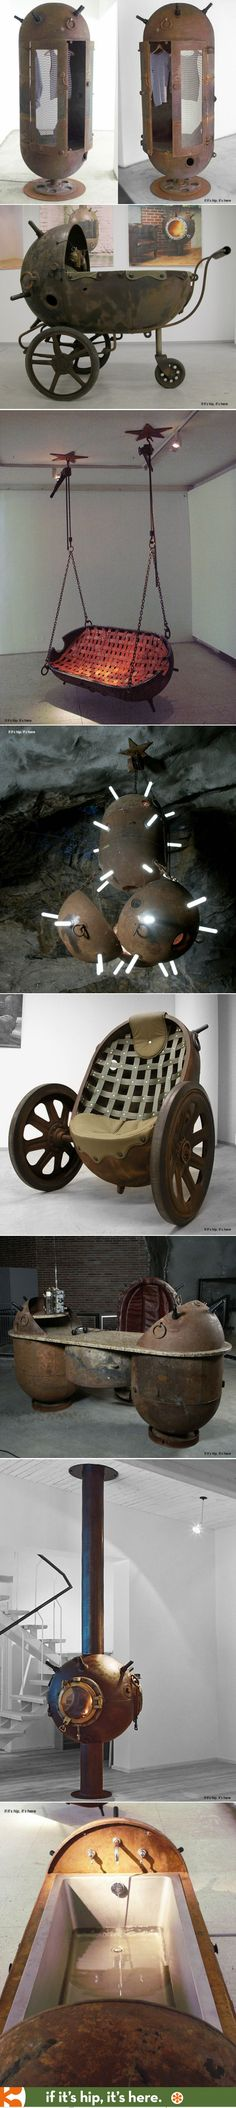 Furniture and home furnishings made from old mine shells. Wow.